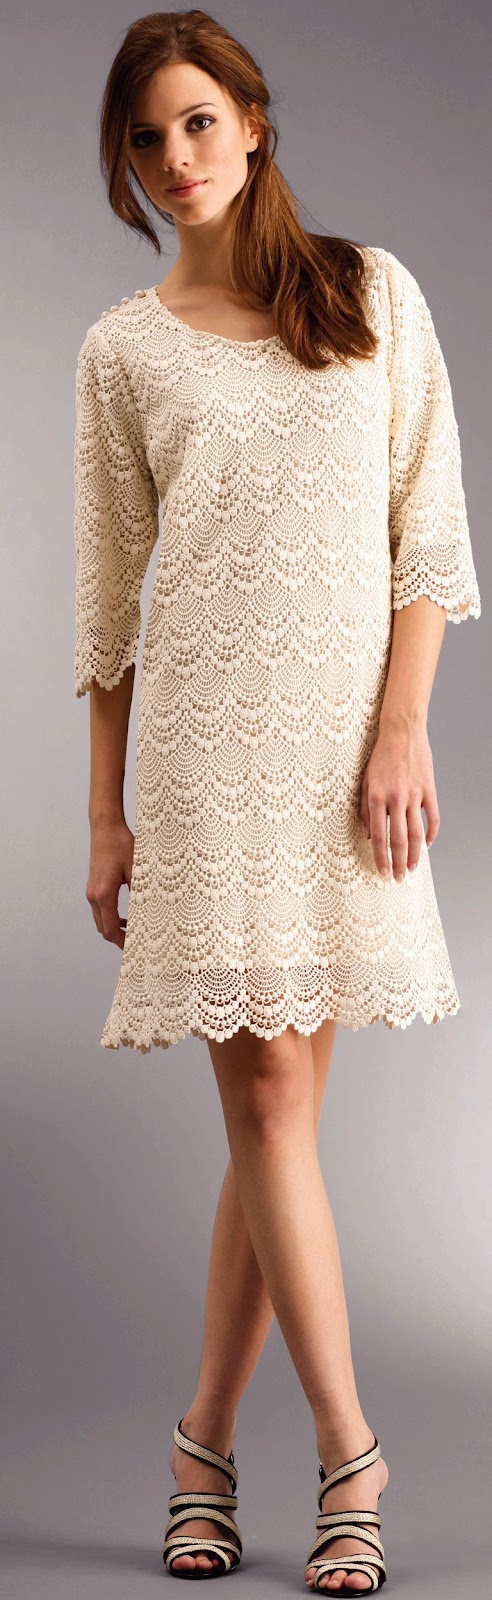 very interesting dress to crochet for ladies